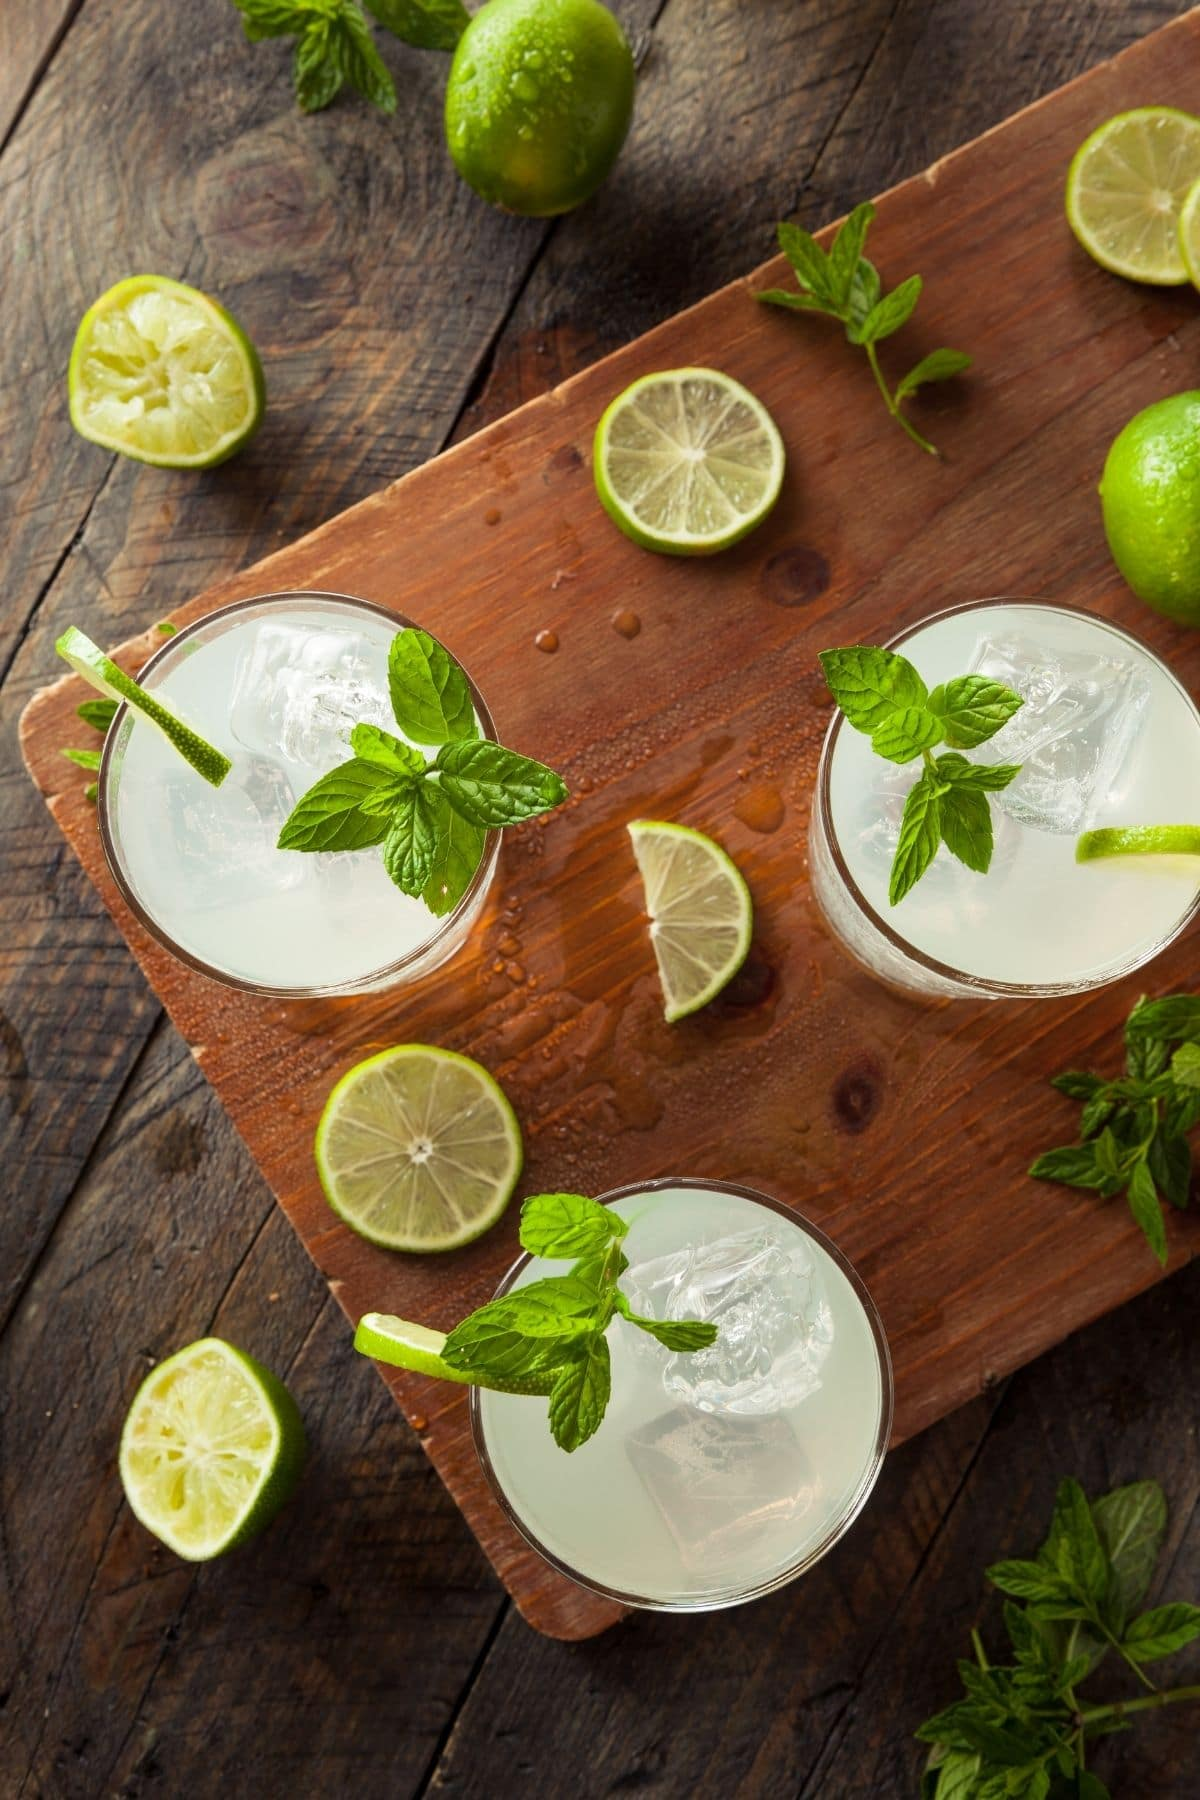 GLASSES OF LIMEADE FROM OVERHEAD